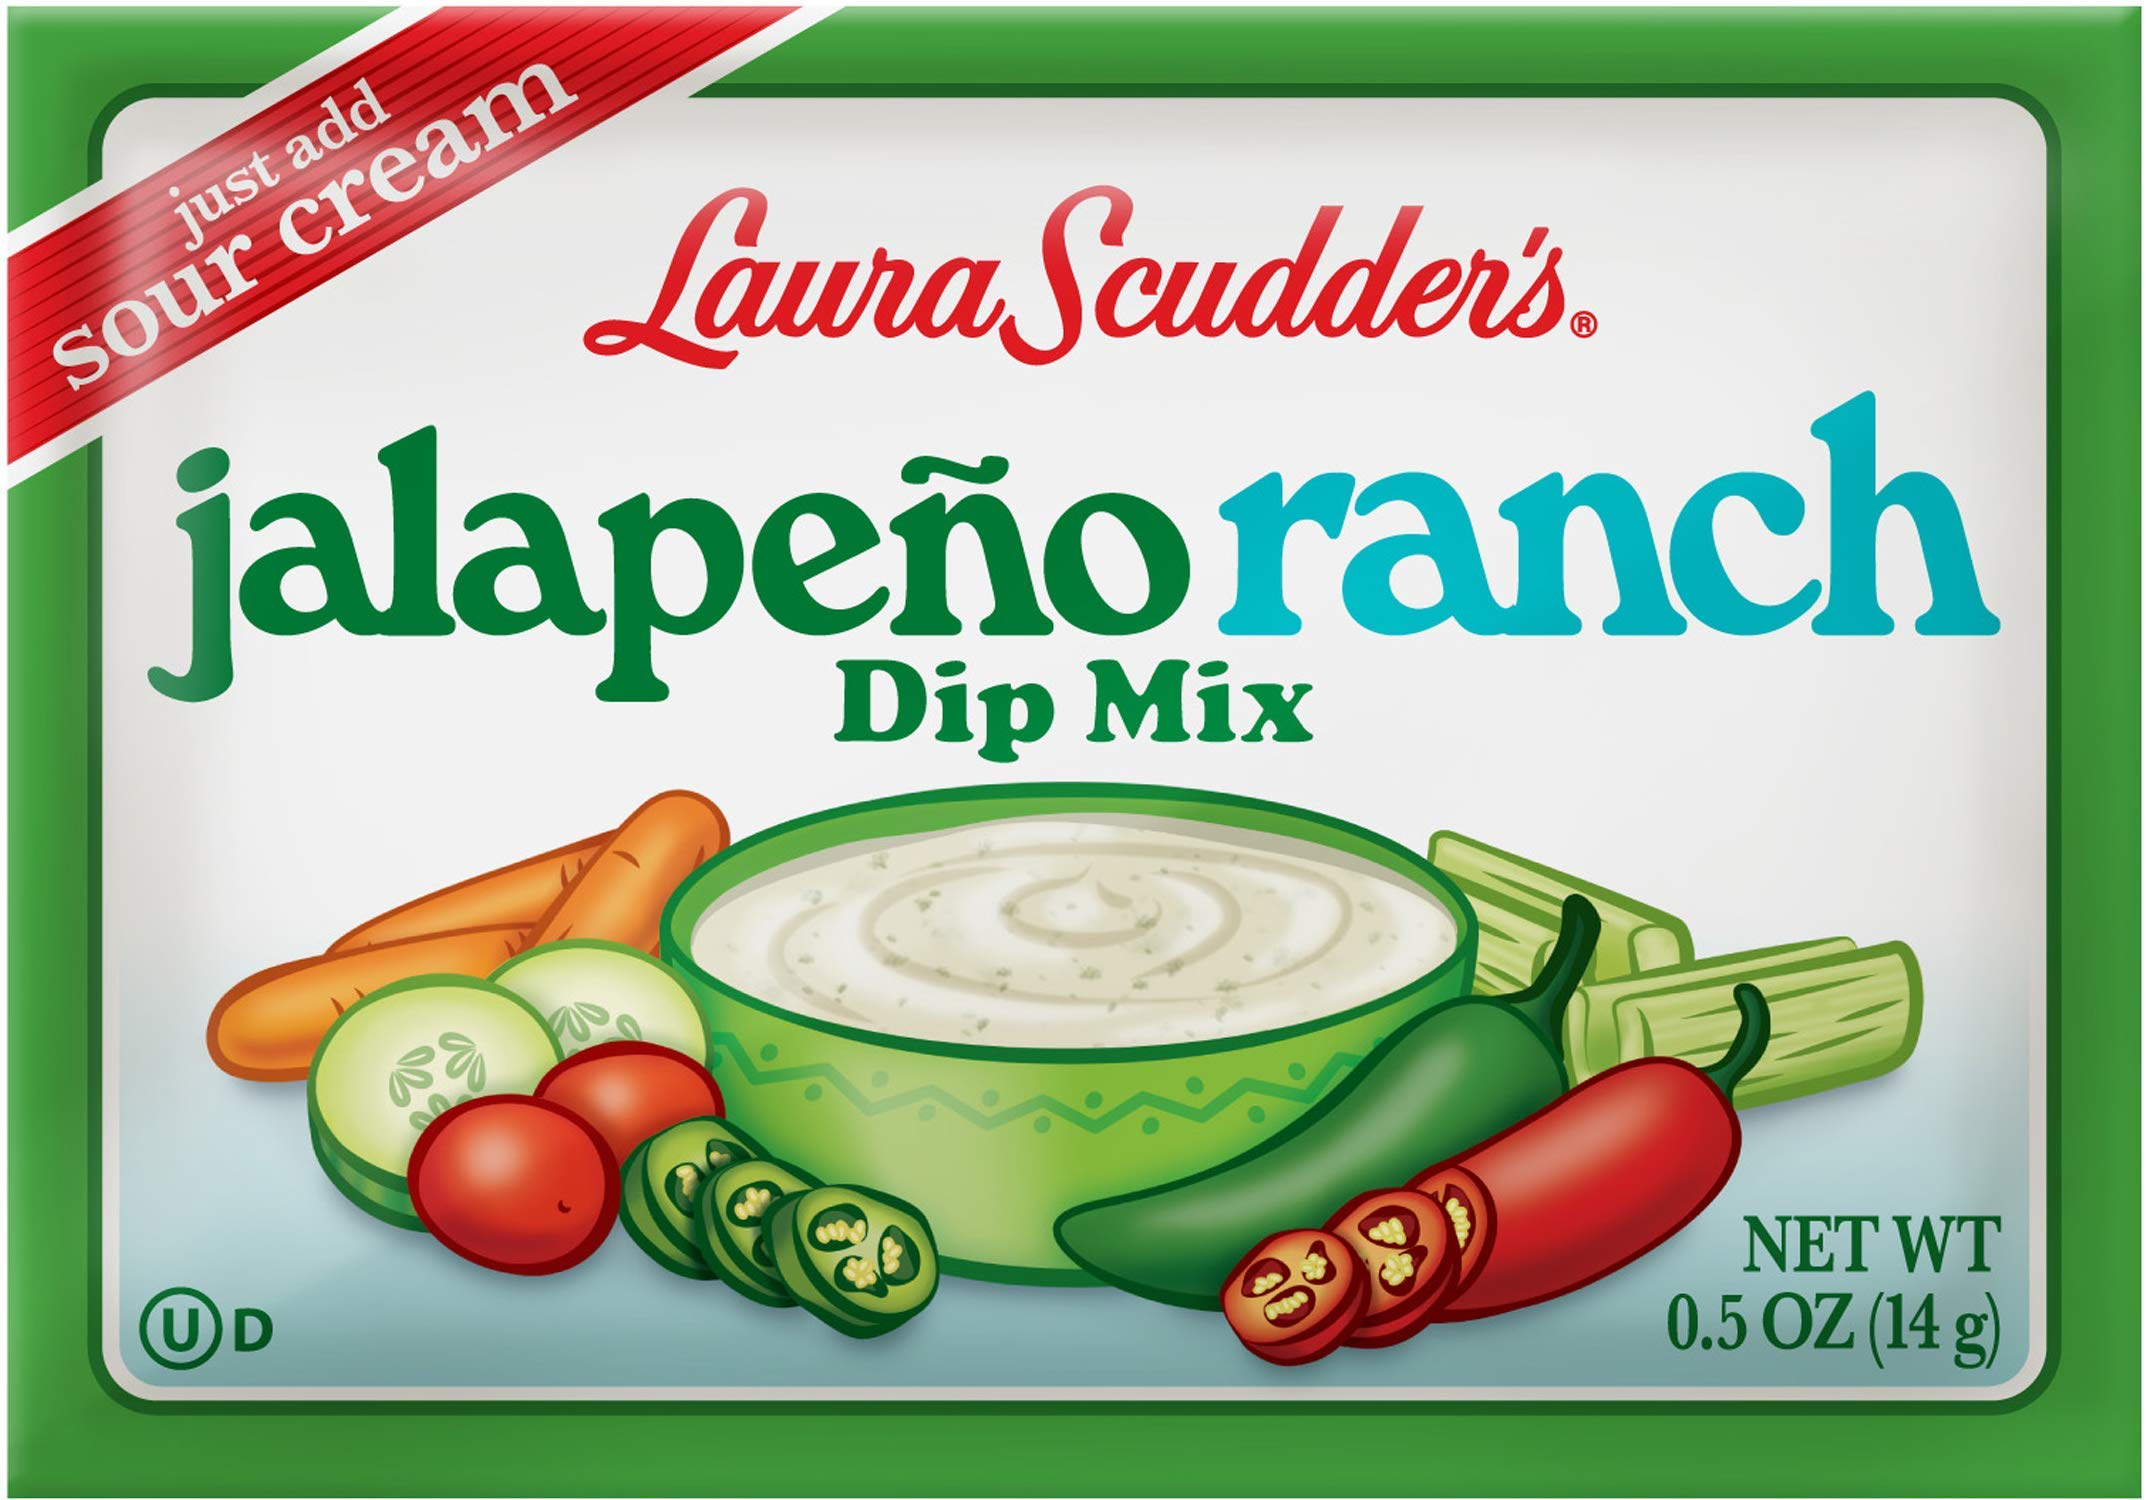 Laura Scudder's Jalepeno Ranch Dry Dip Mix, Great For Vegetables, Chips, Sauces and Seasoning (Pack of 24) by Laura Scudder's